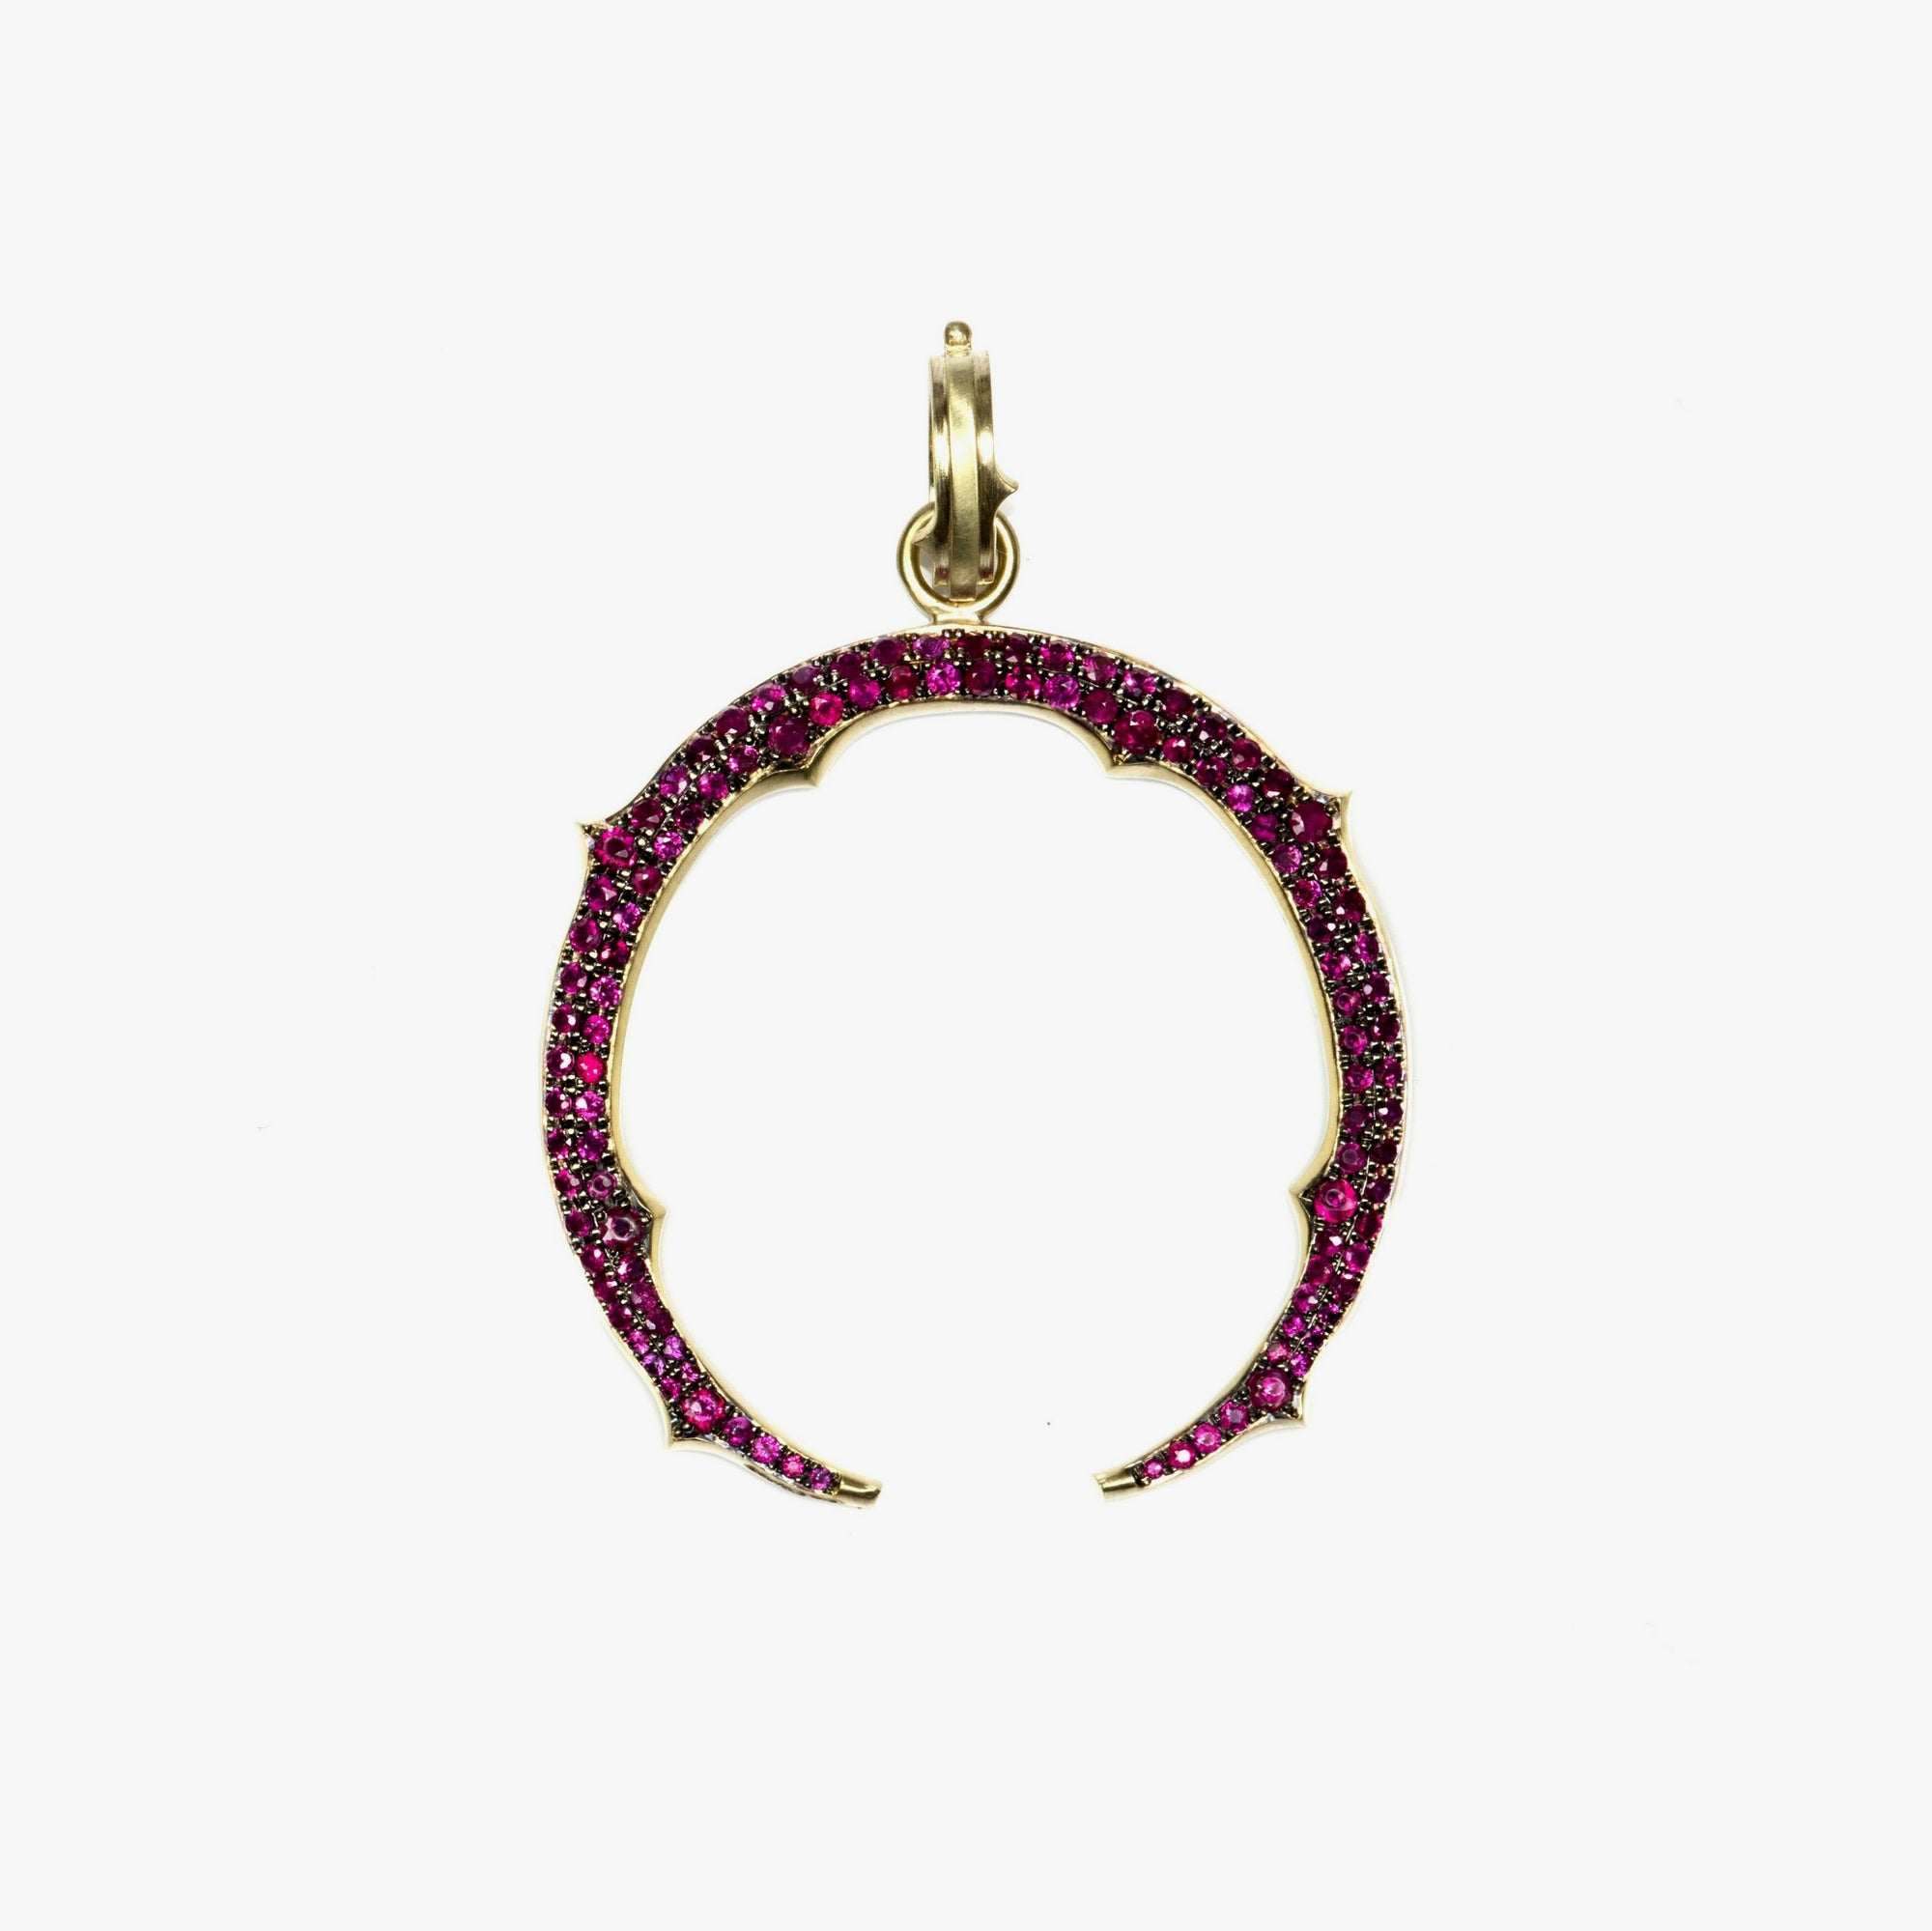 Horse Shoe Charm with Rubies